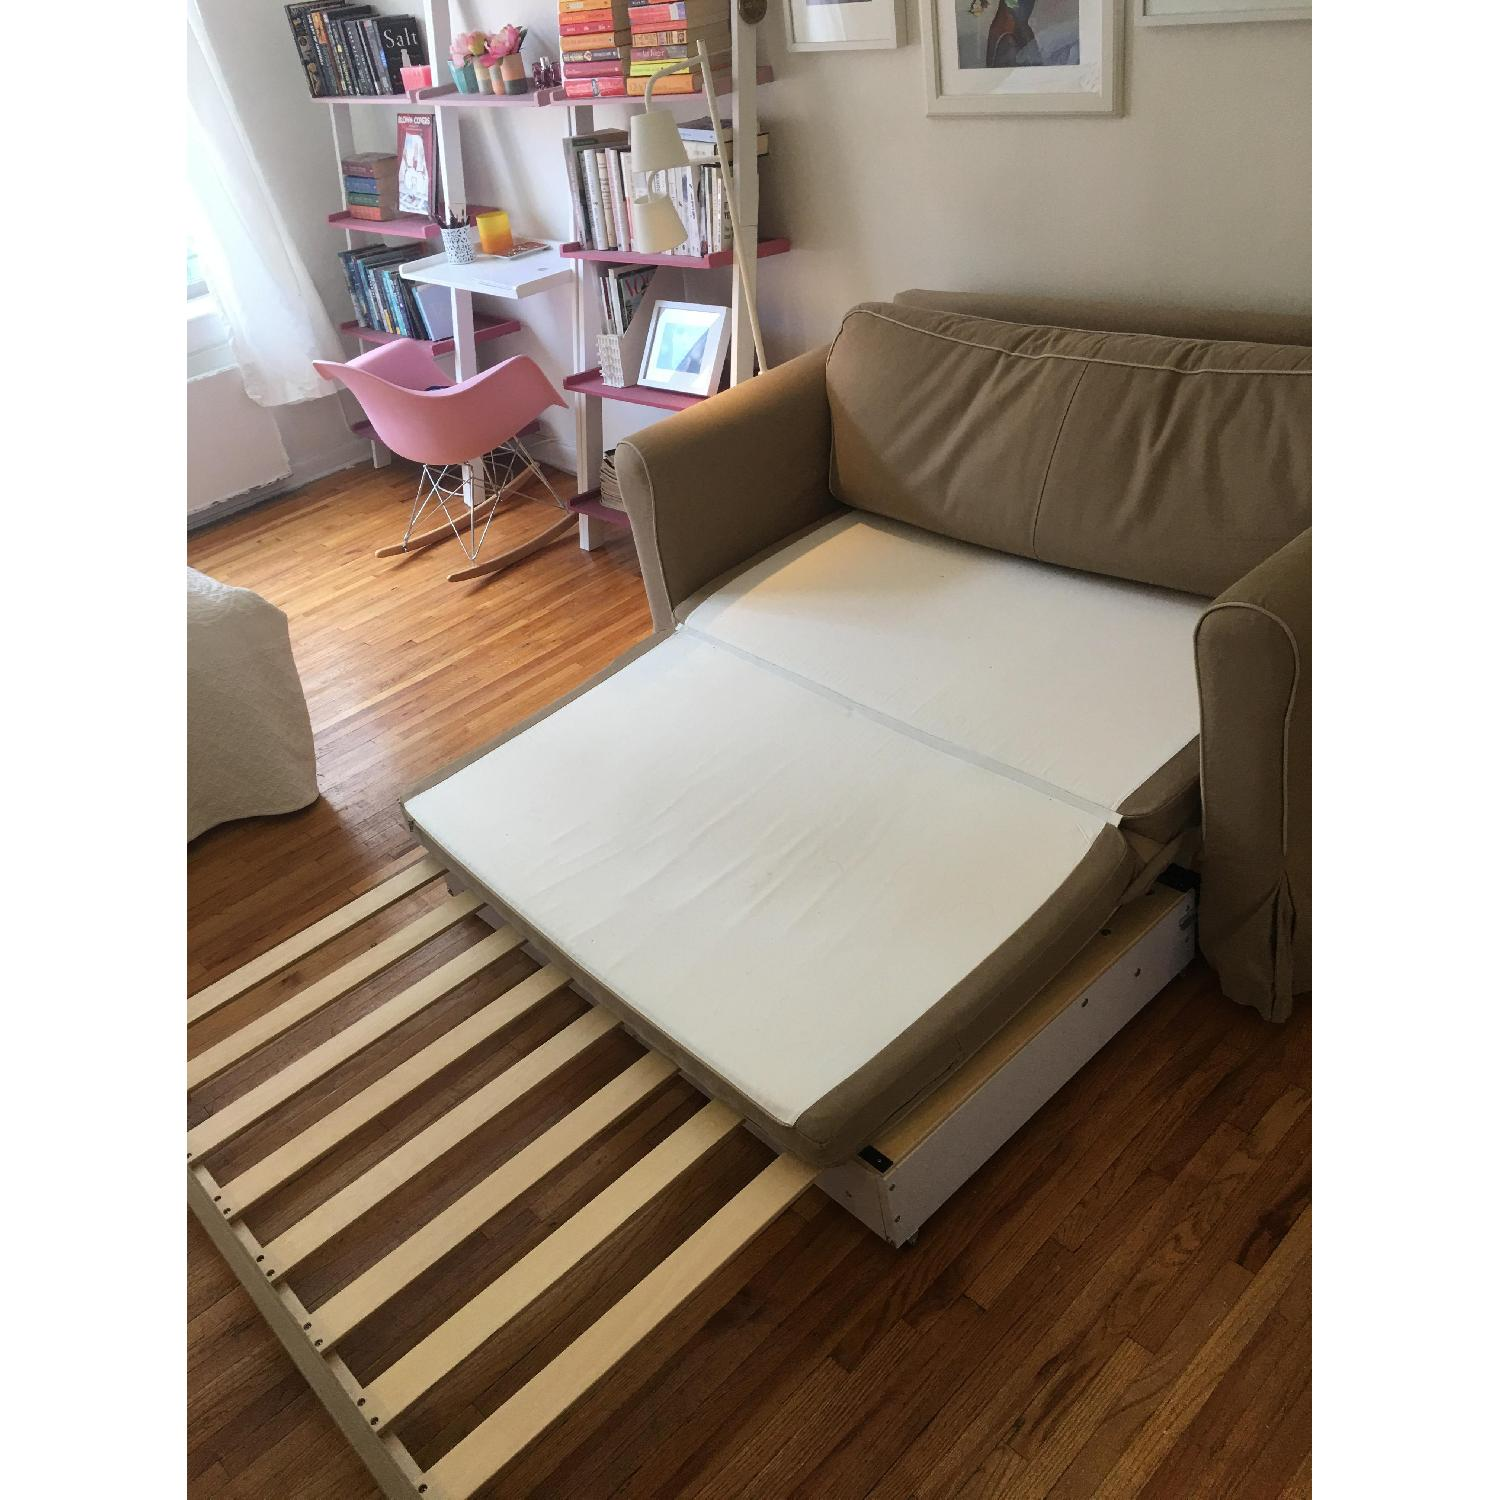 West Elm Beige Fold-Out Couch - image-5